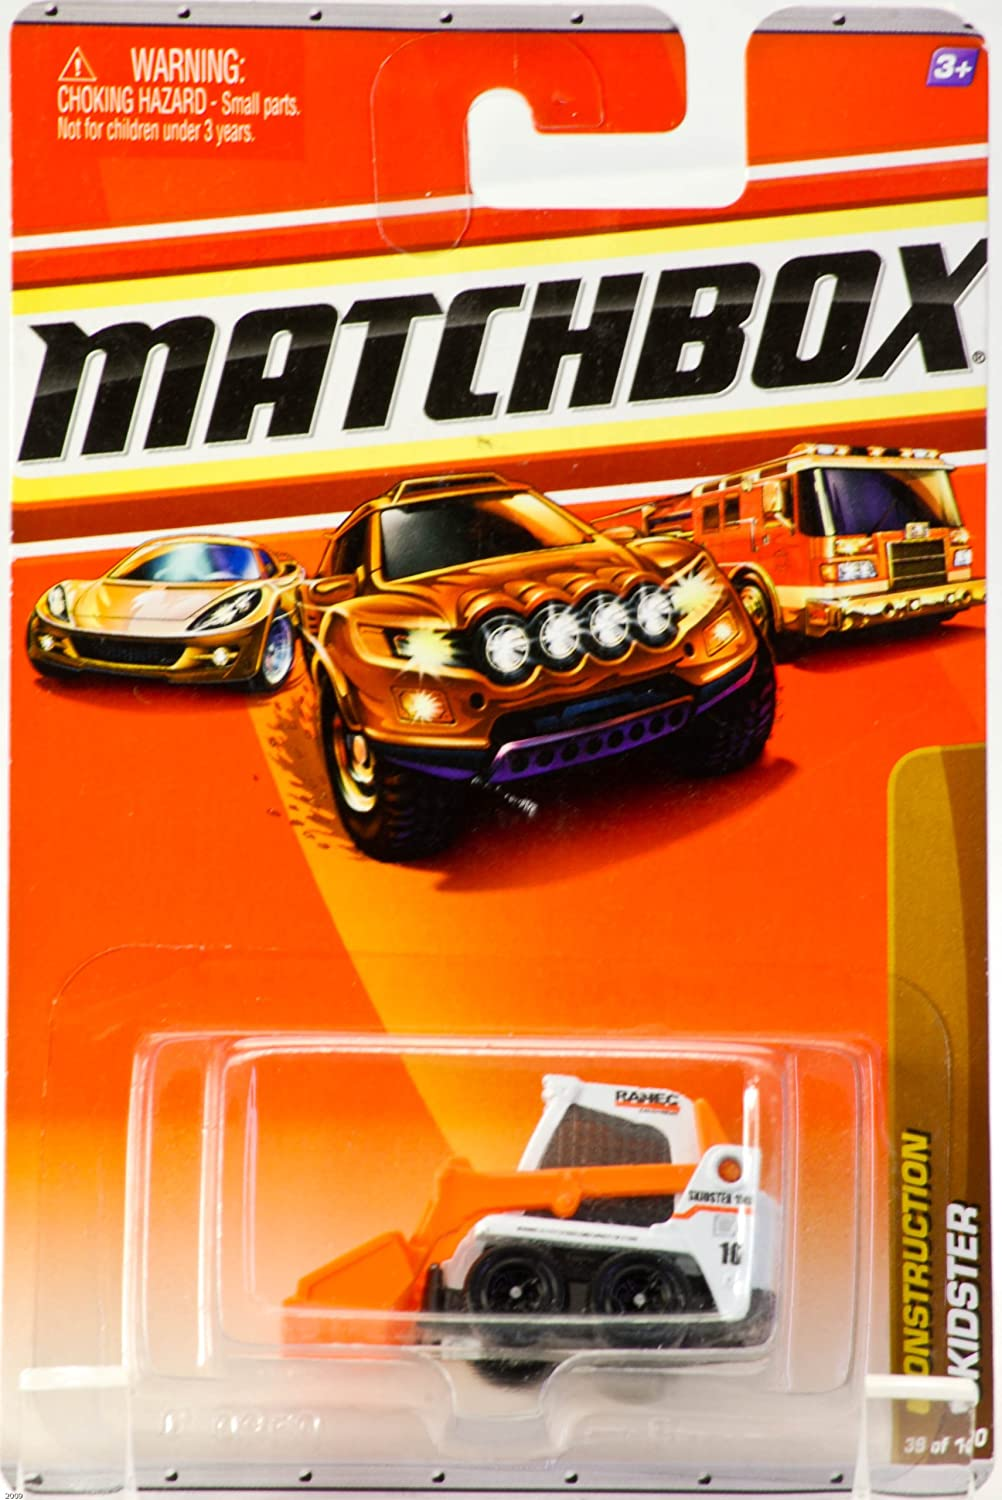 2009  Mattel  Matchbox  Construction Skidster  39 of 100 Vehicles  Die Cast Metal  Out of Production  Collectible